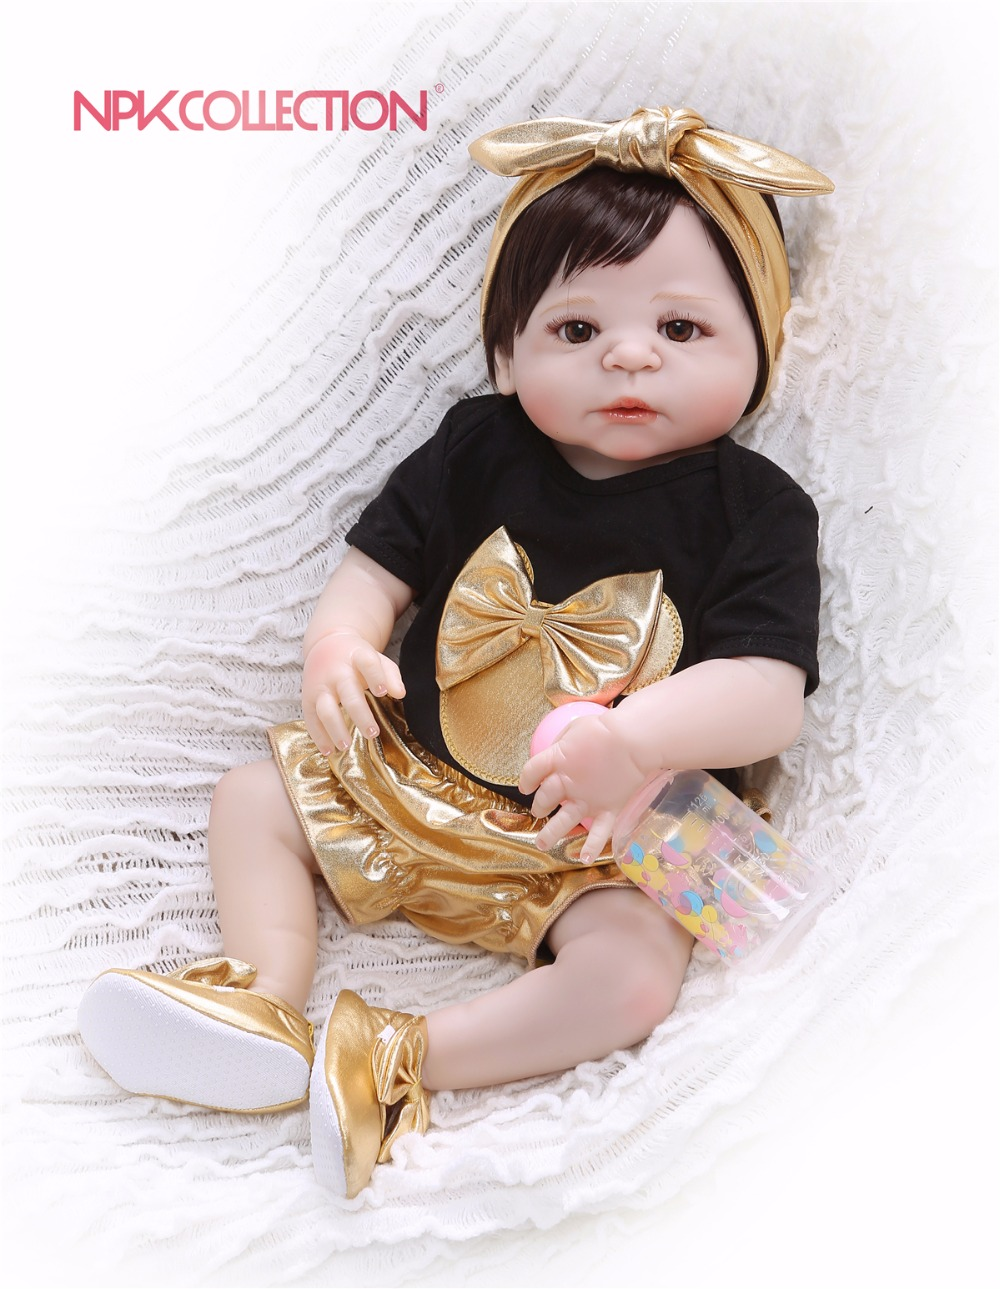 NPK 57CM black & golden Full Body Silicone Girl Reborn Babies Doll Toys Princess Babies Doll Wig Hair Birthday Gift Xmas giftNPK 57CM black & golden Full Body Silicone Girl Reborn Babies Doll Toys Princess Babies Doll Wig Hair Birthday Gift Xmas gift